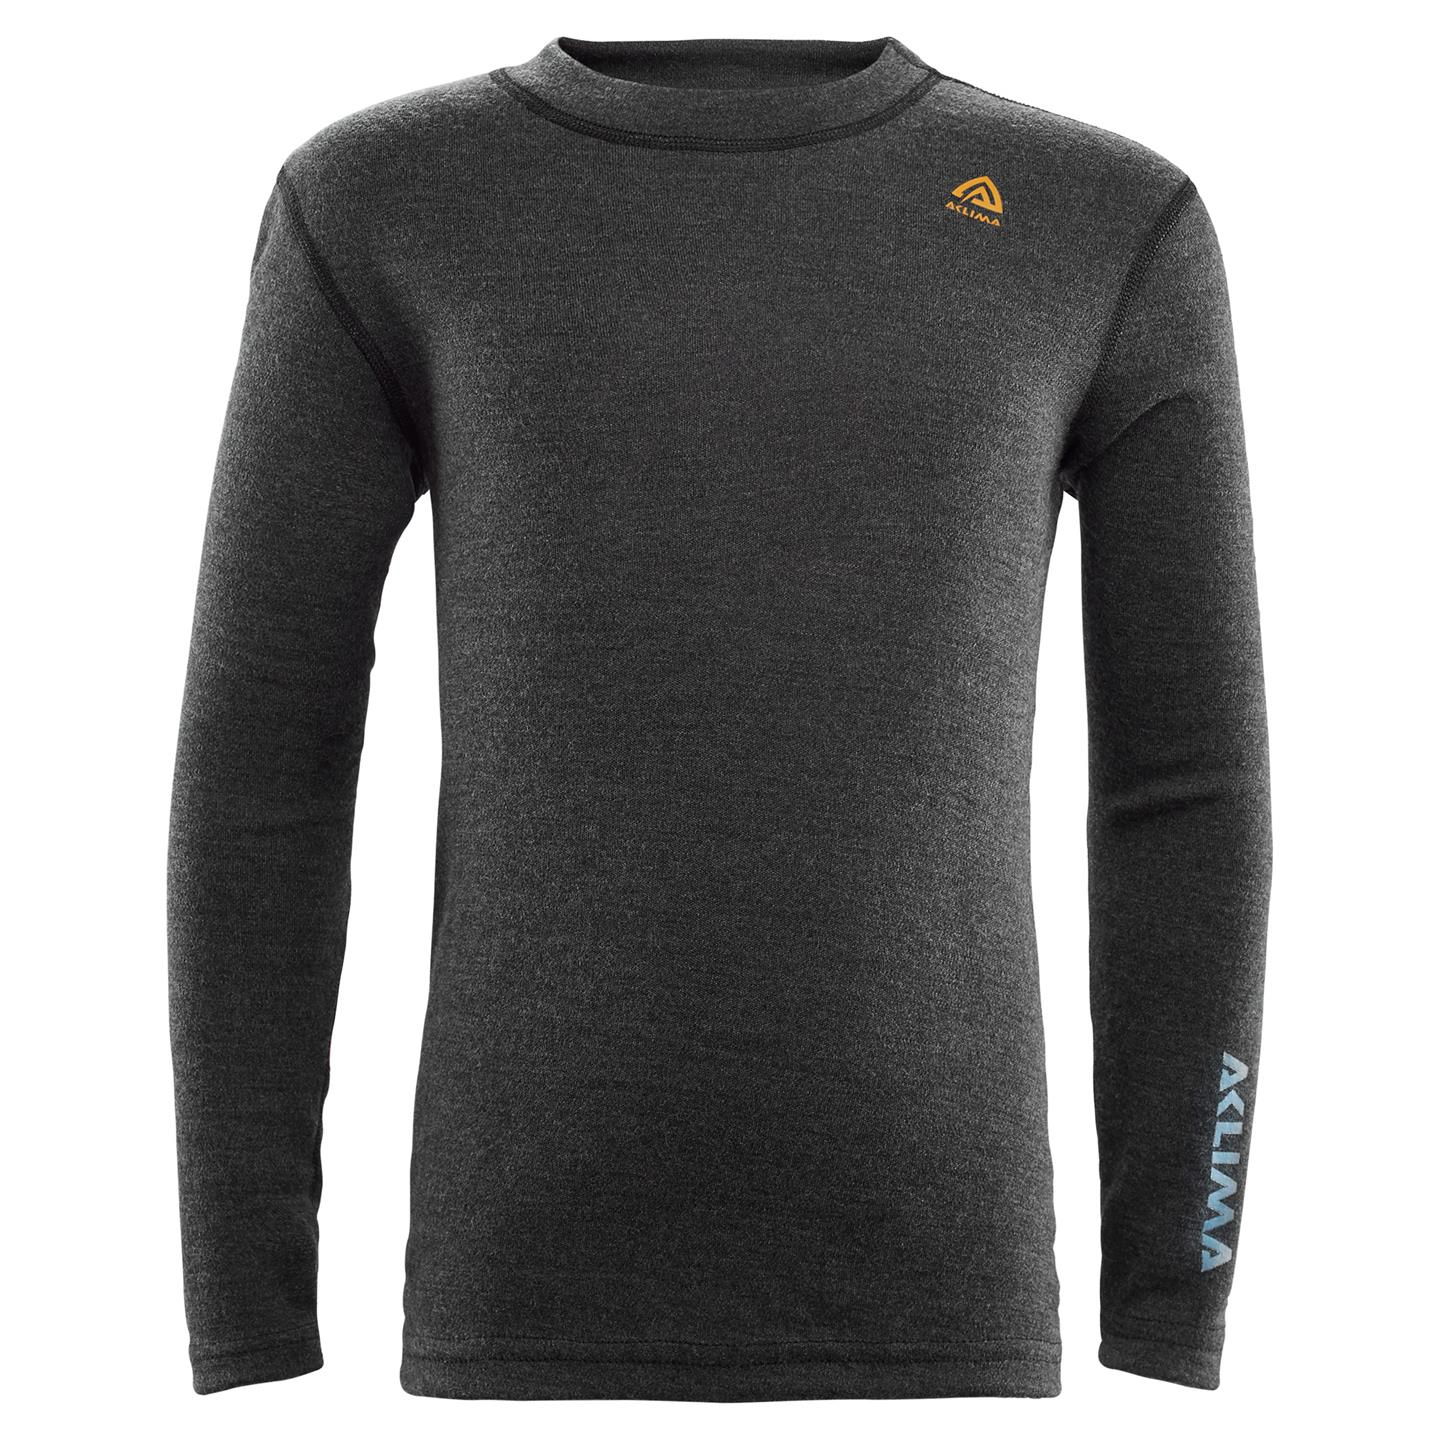 Aclima WarmWool Crewneck JR